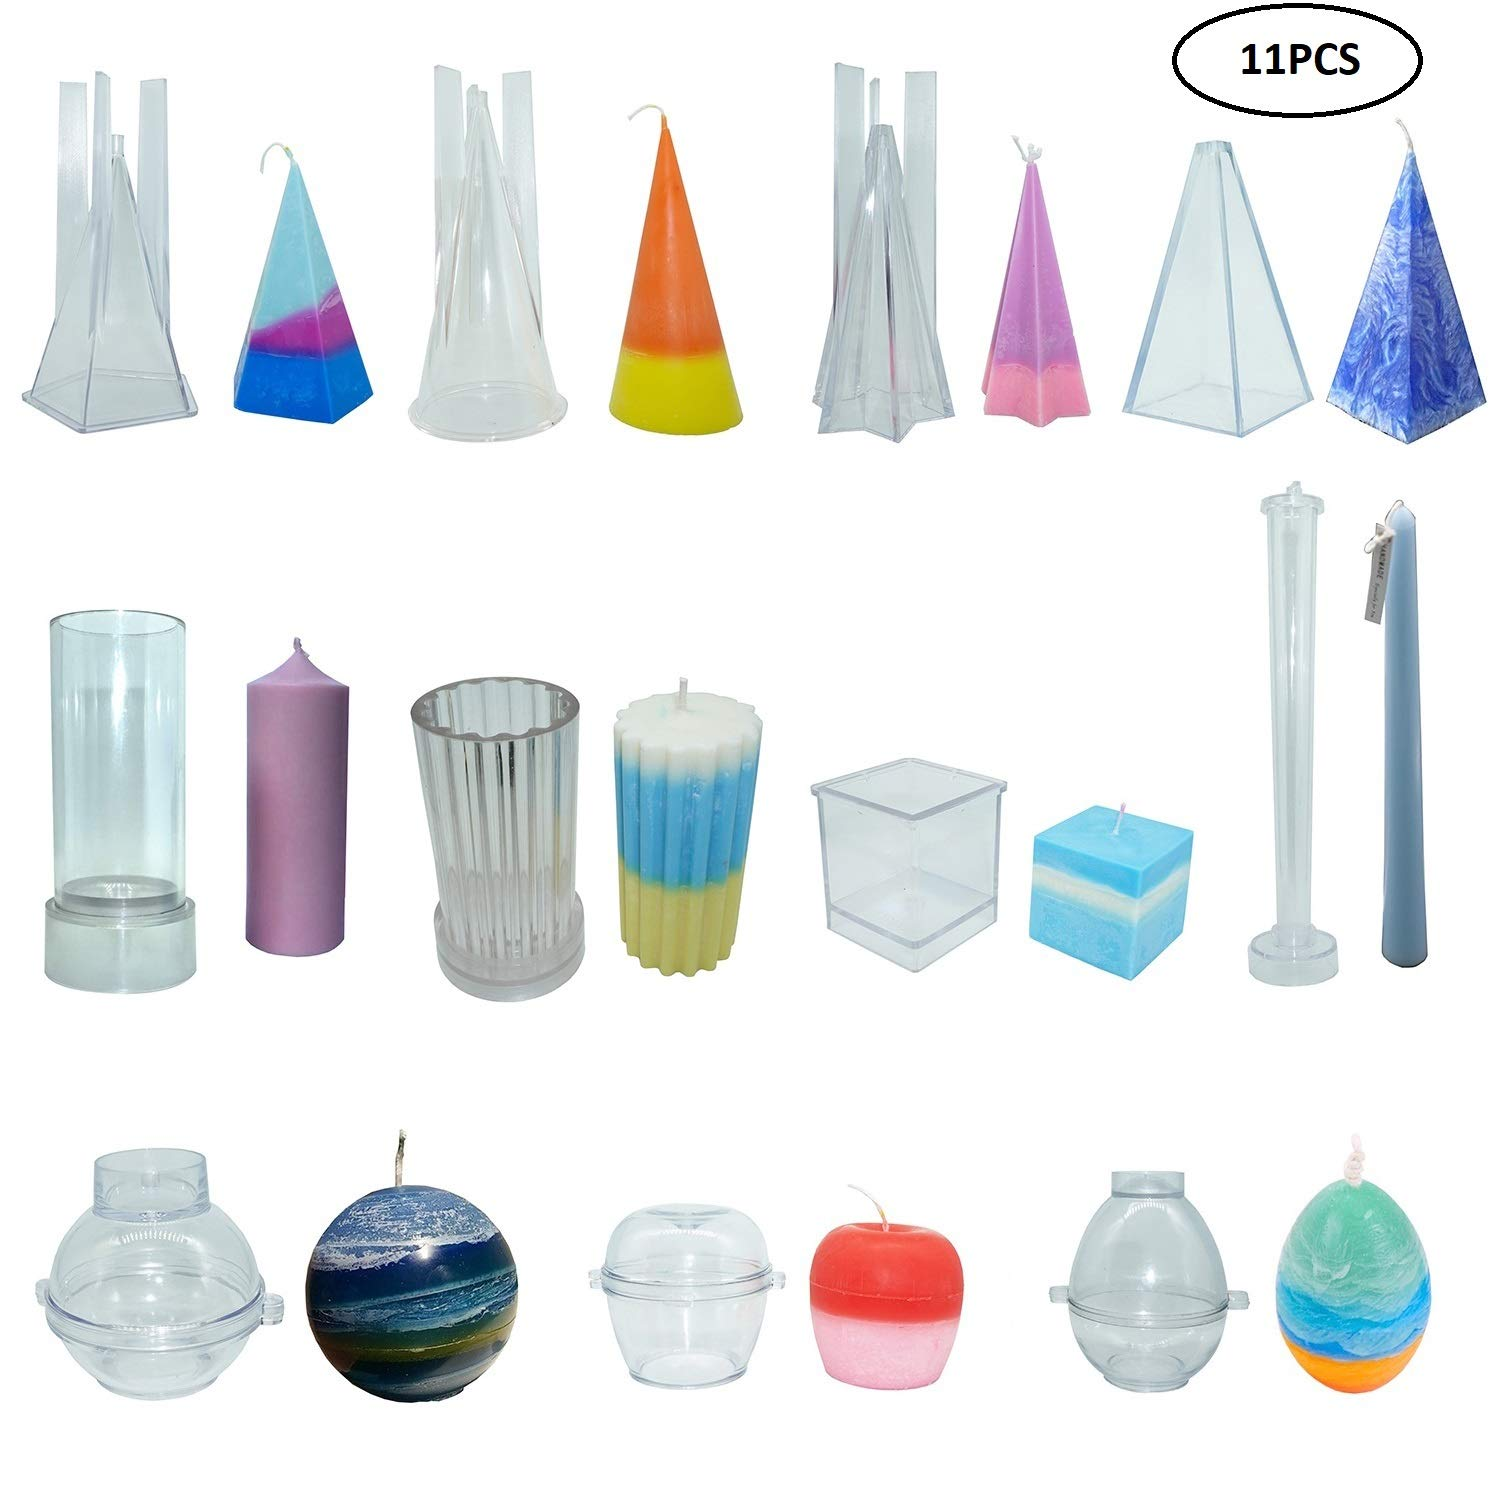 MILIVIXAY 11pcs Candle Molds Set-Plastic Candle Making Kit-DIY Candle Making Supplies Pyramid & Cylinder & Ball Sphere & Pillar & Apple & Square Egg & Cones & Taper Mold